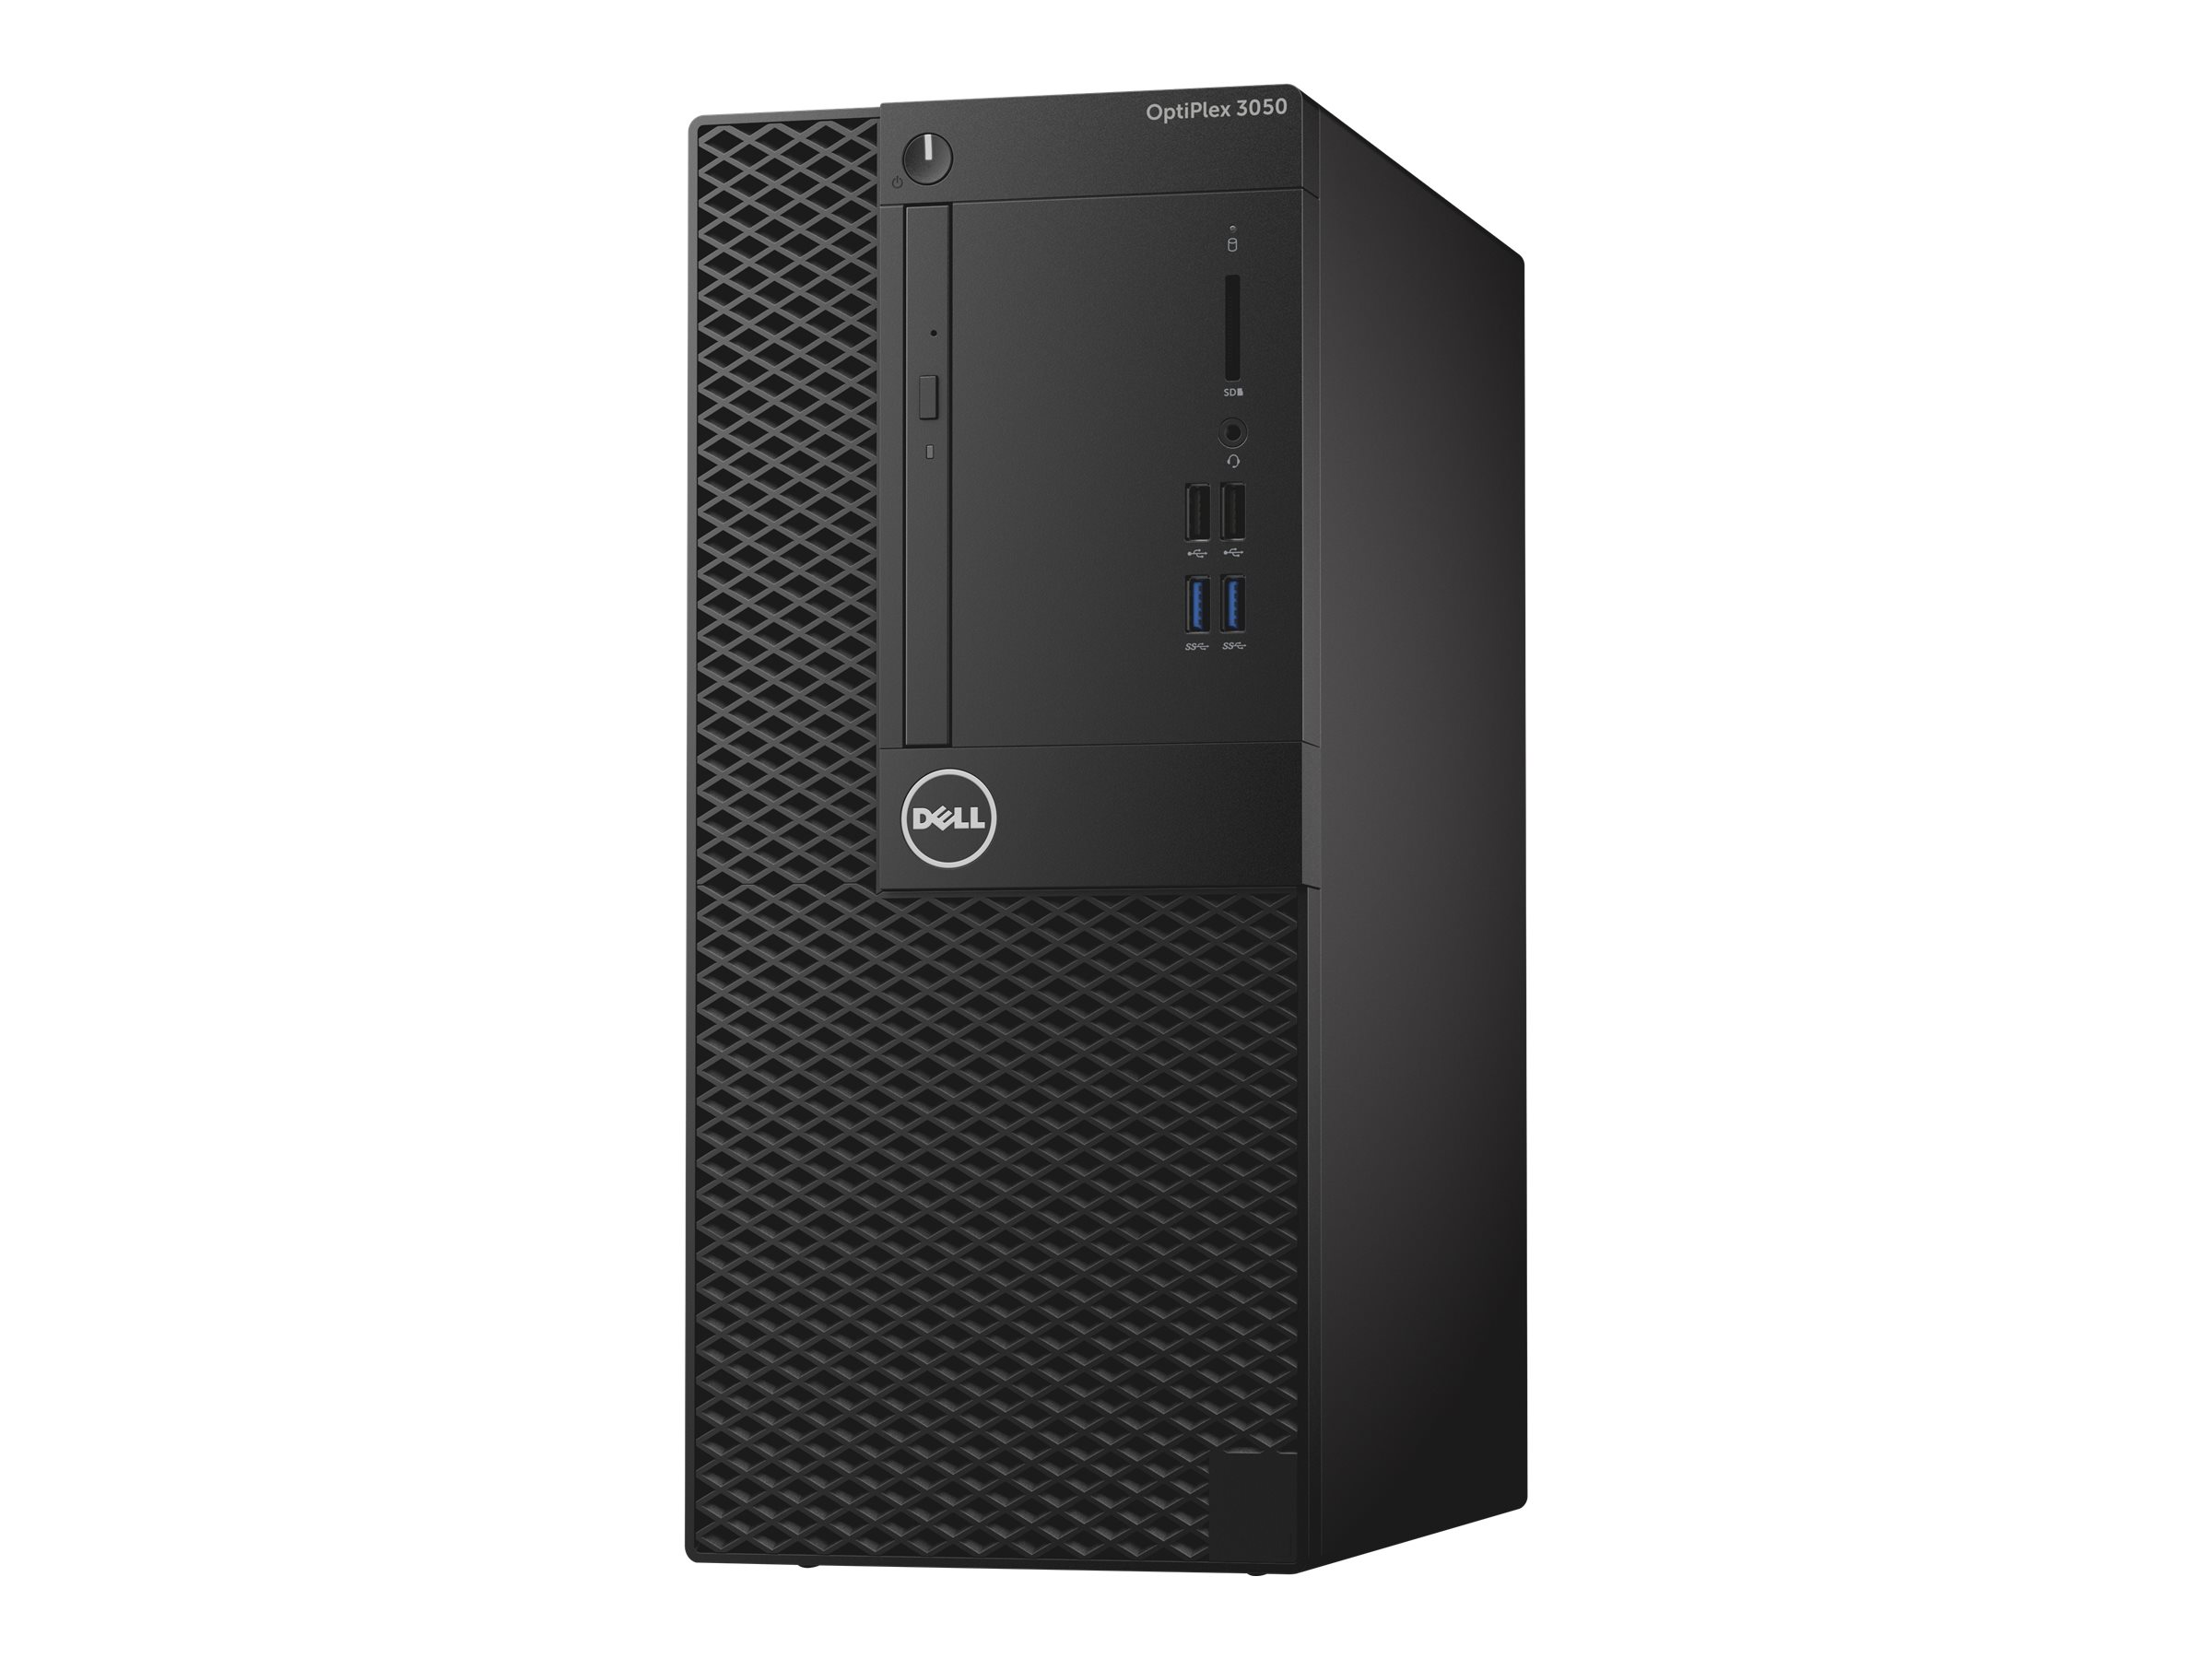 Dell OptiPlex 3050 - MT - 1 x Core i5 7500 / 3.4 GHz - RAM 4 GB - HDD 500 GB - DVD-Writer